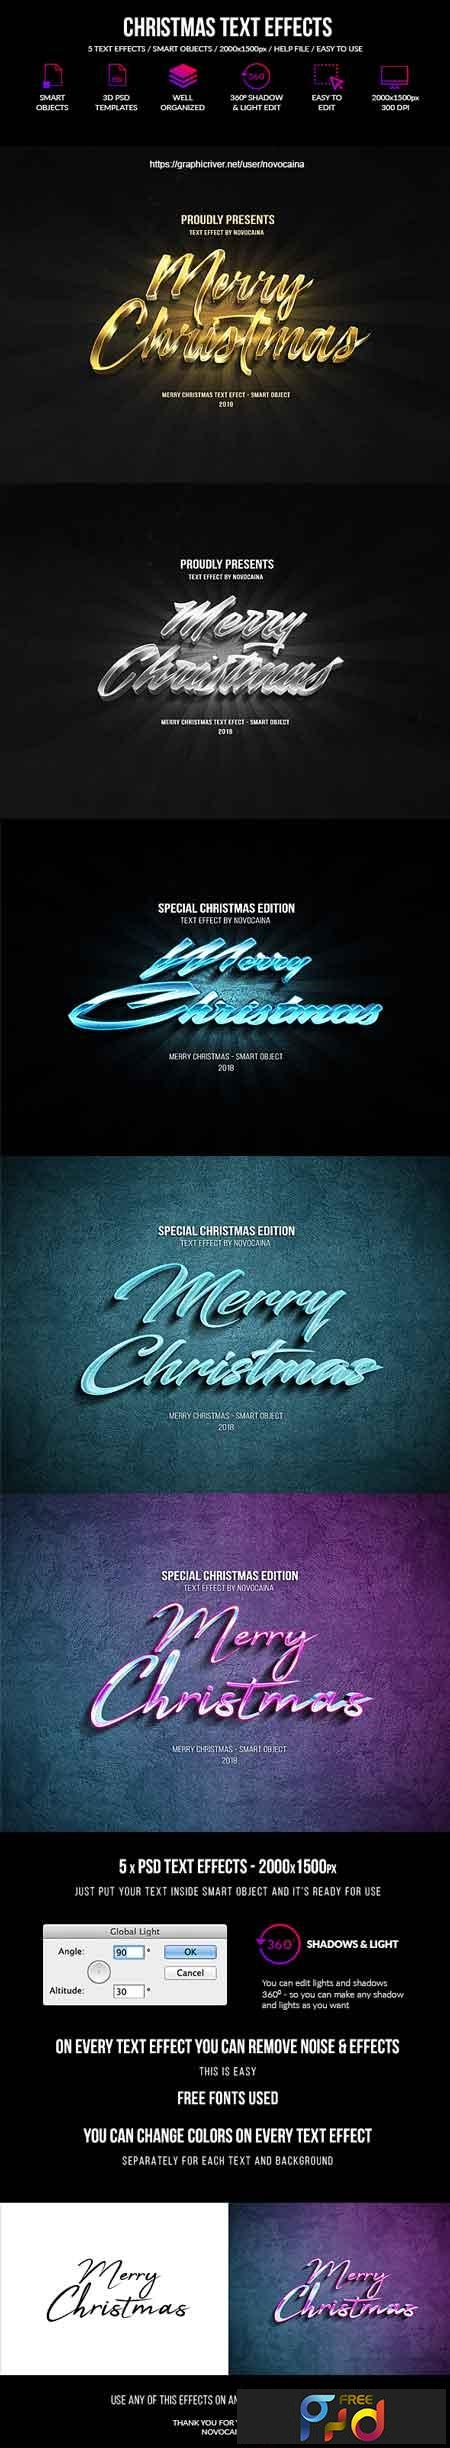 Christmas Text Effects 22809260 1